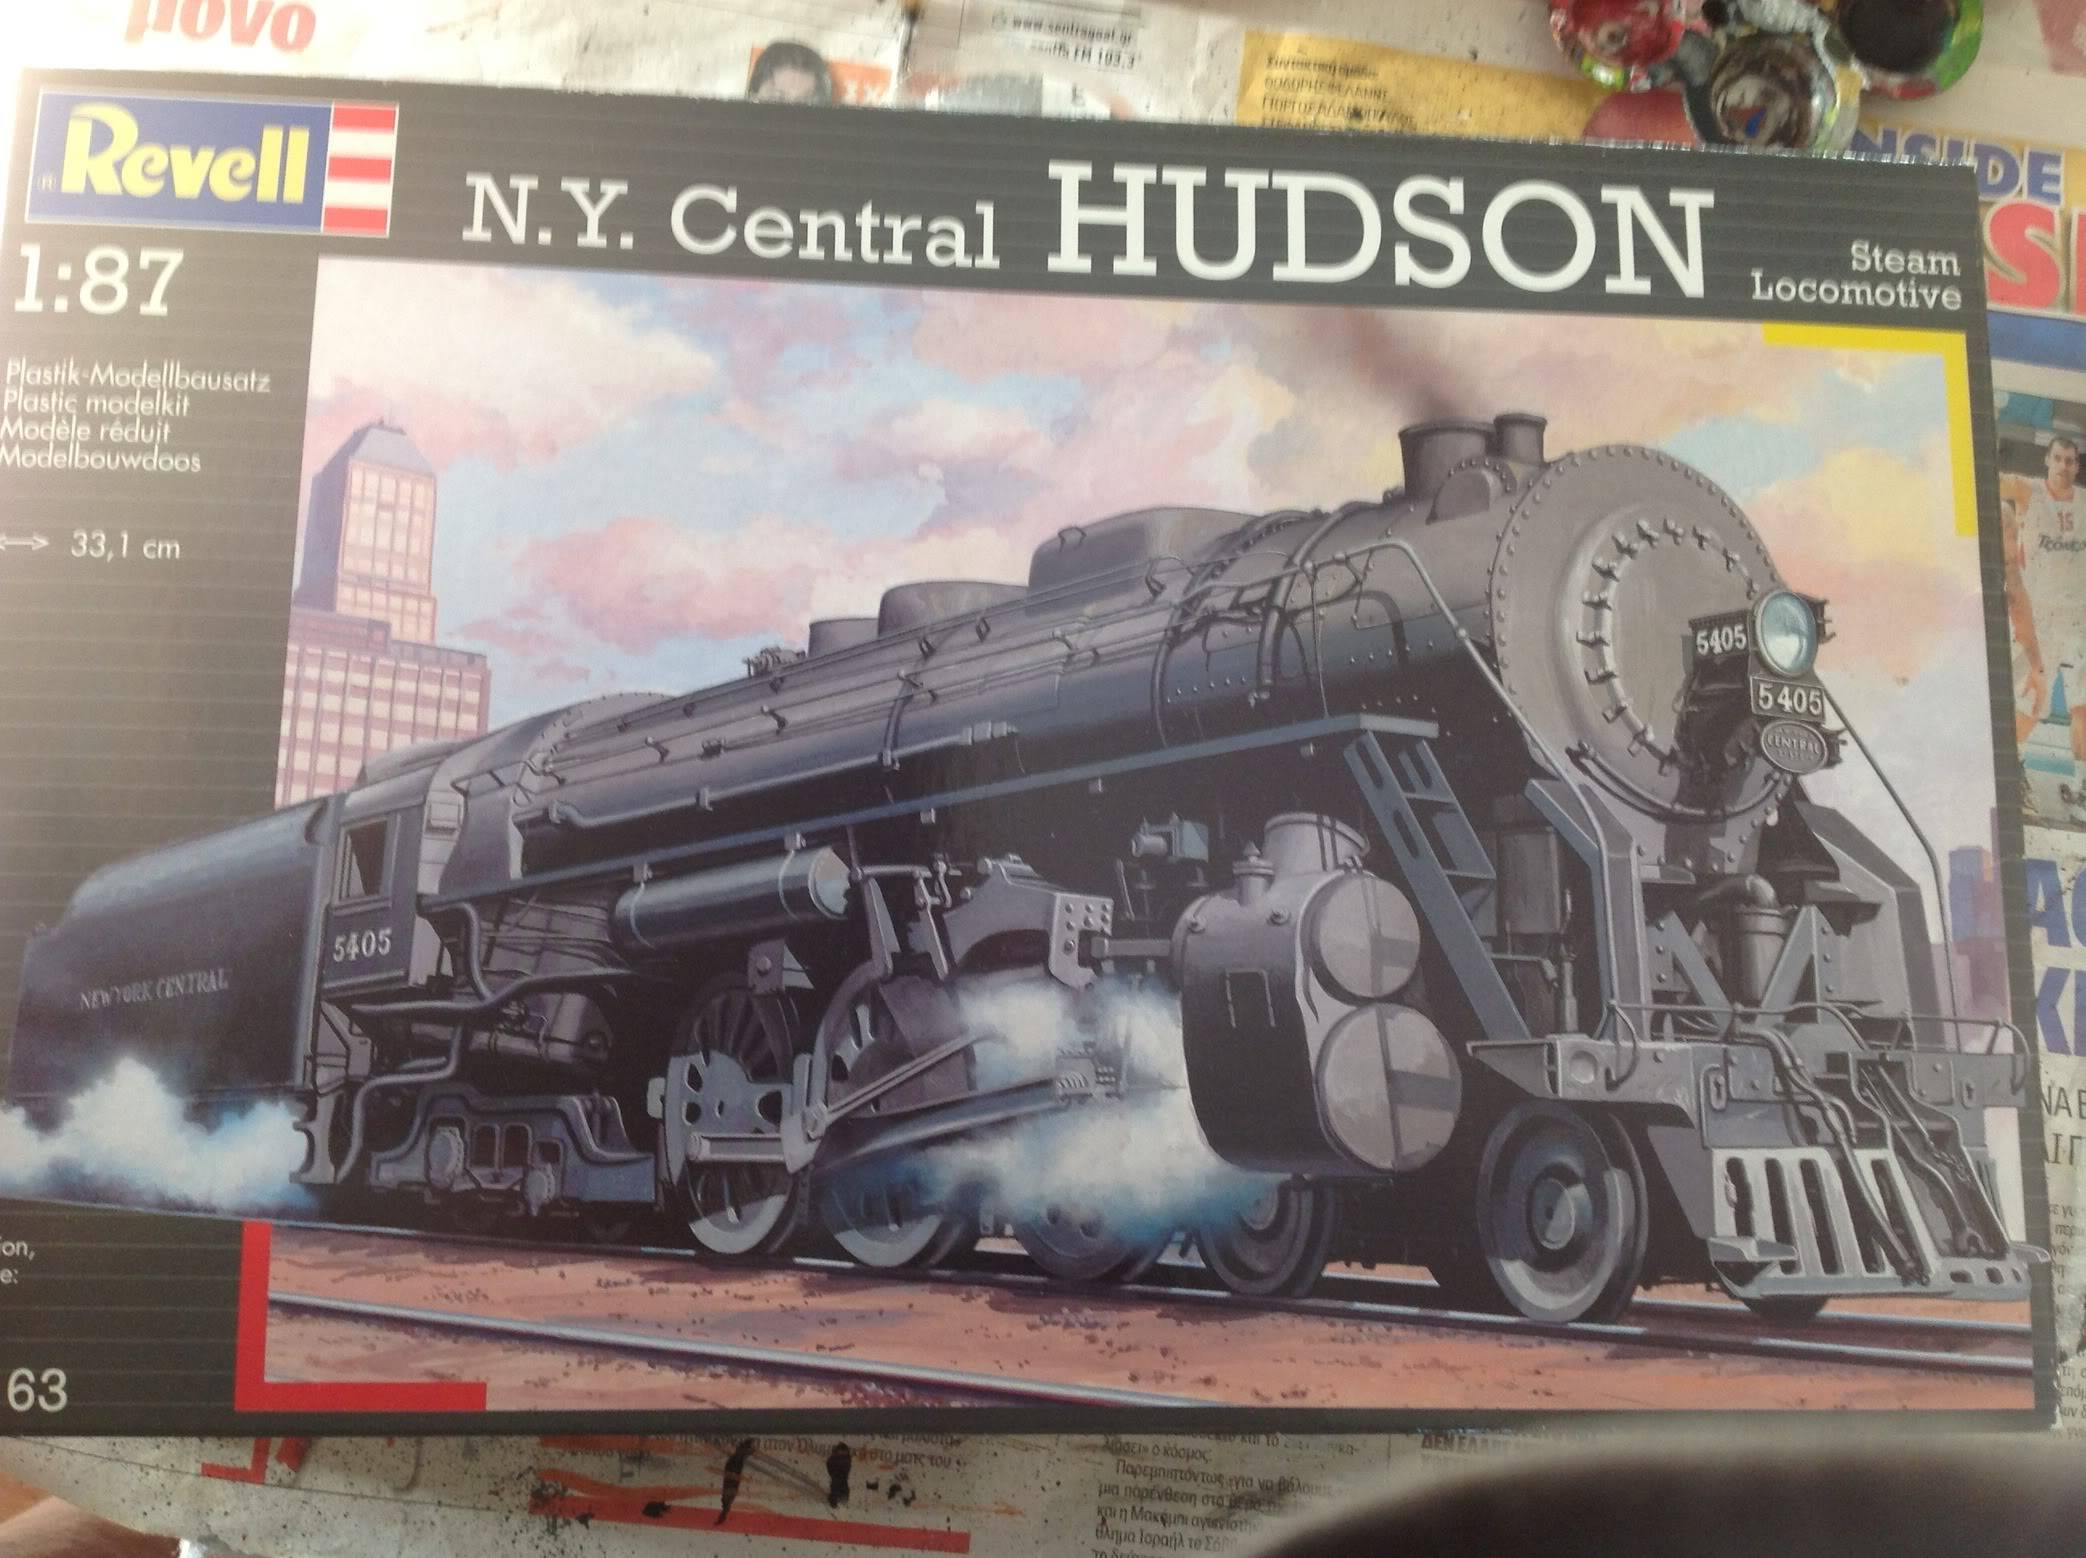 N.Y. central HUDSON ateam locomotive 144-1